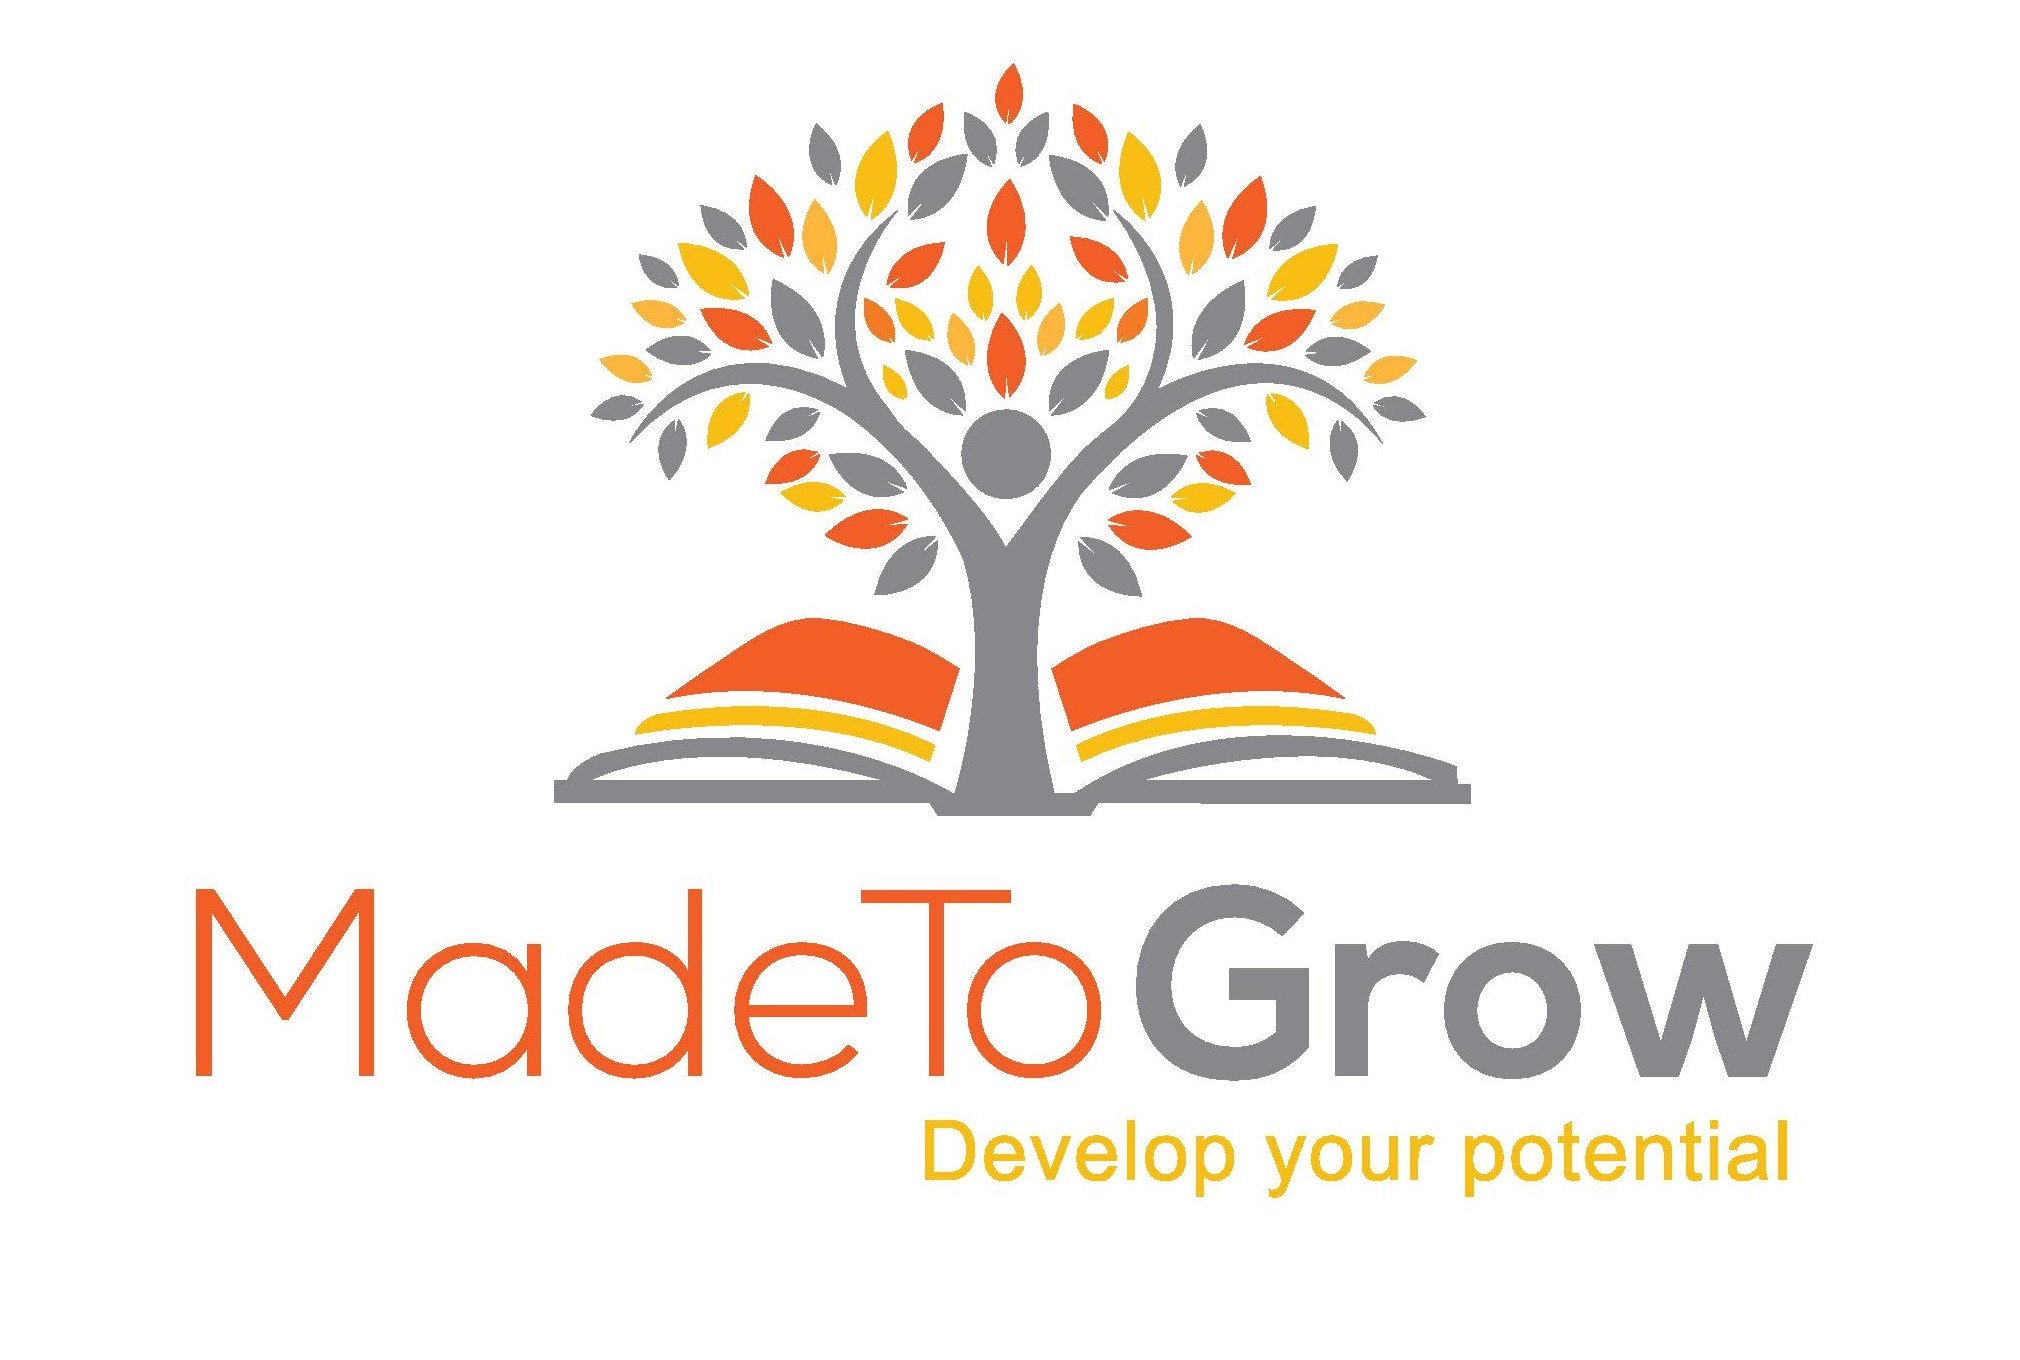 MadeToGrow Logo_No Space_Artwork-page-001 – Kopi.jpg